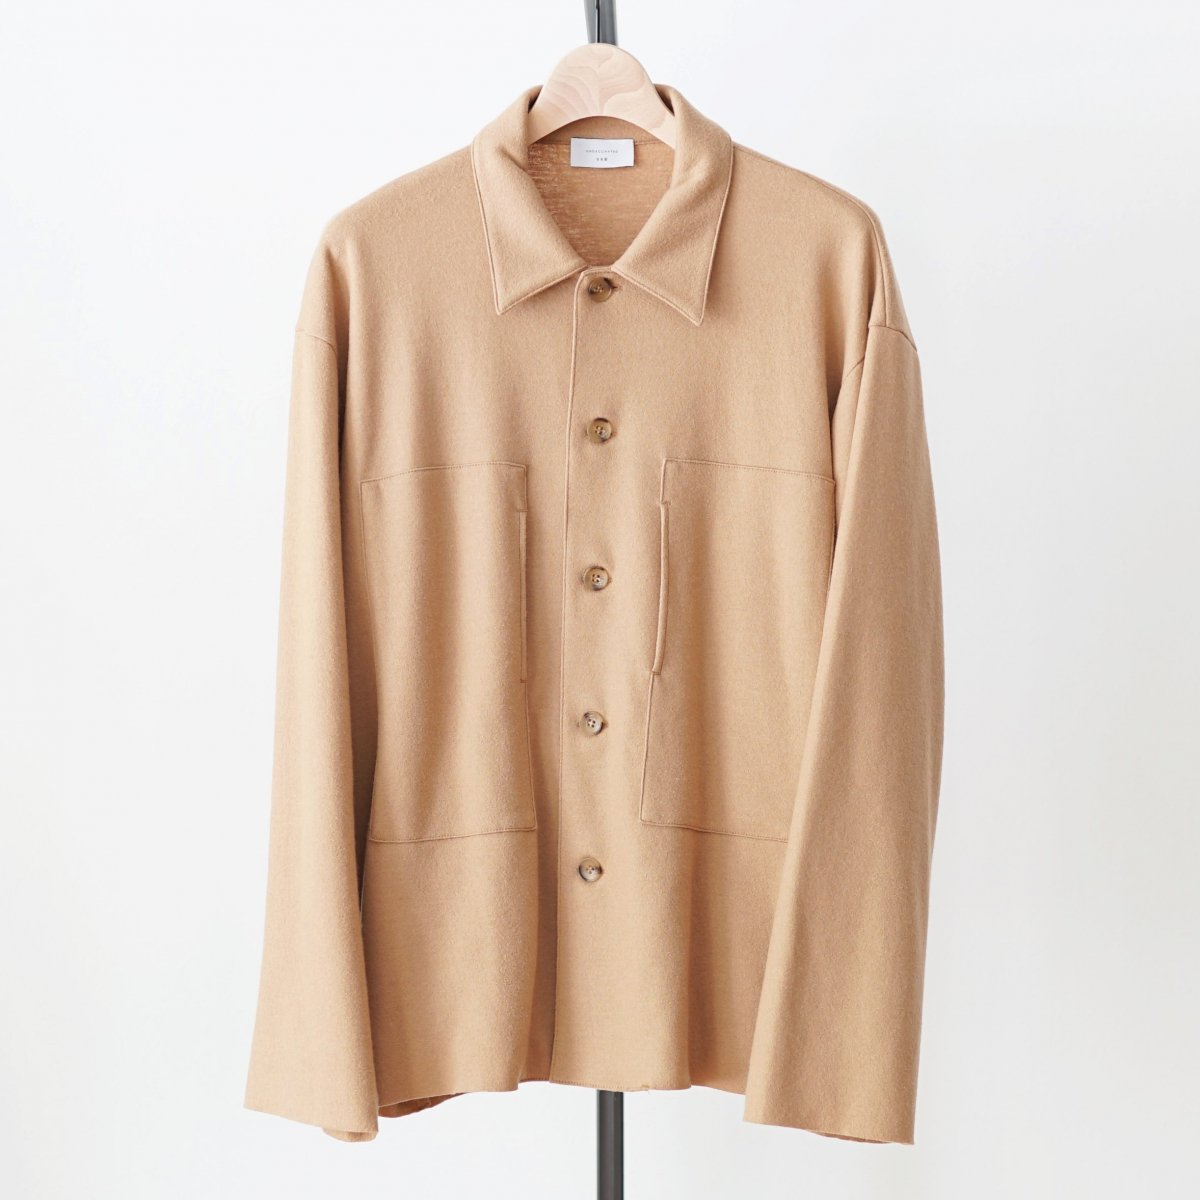 【UNDECORATED アンデコレイテッド】S'140 WOOL KNIT MELTON SHIRT - CAMEL